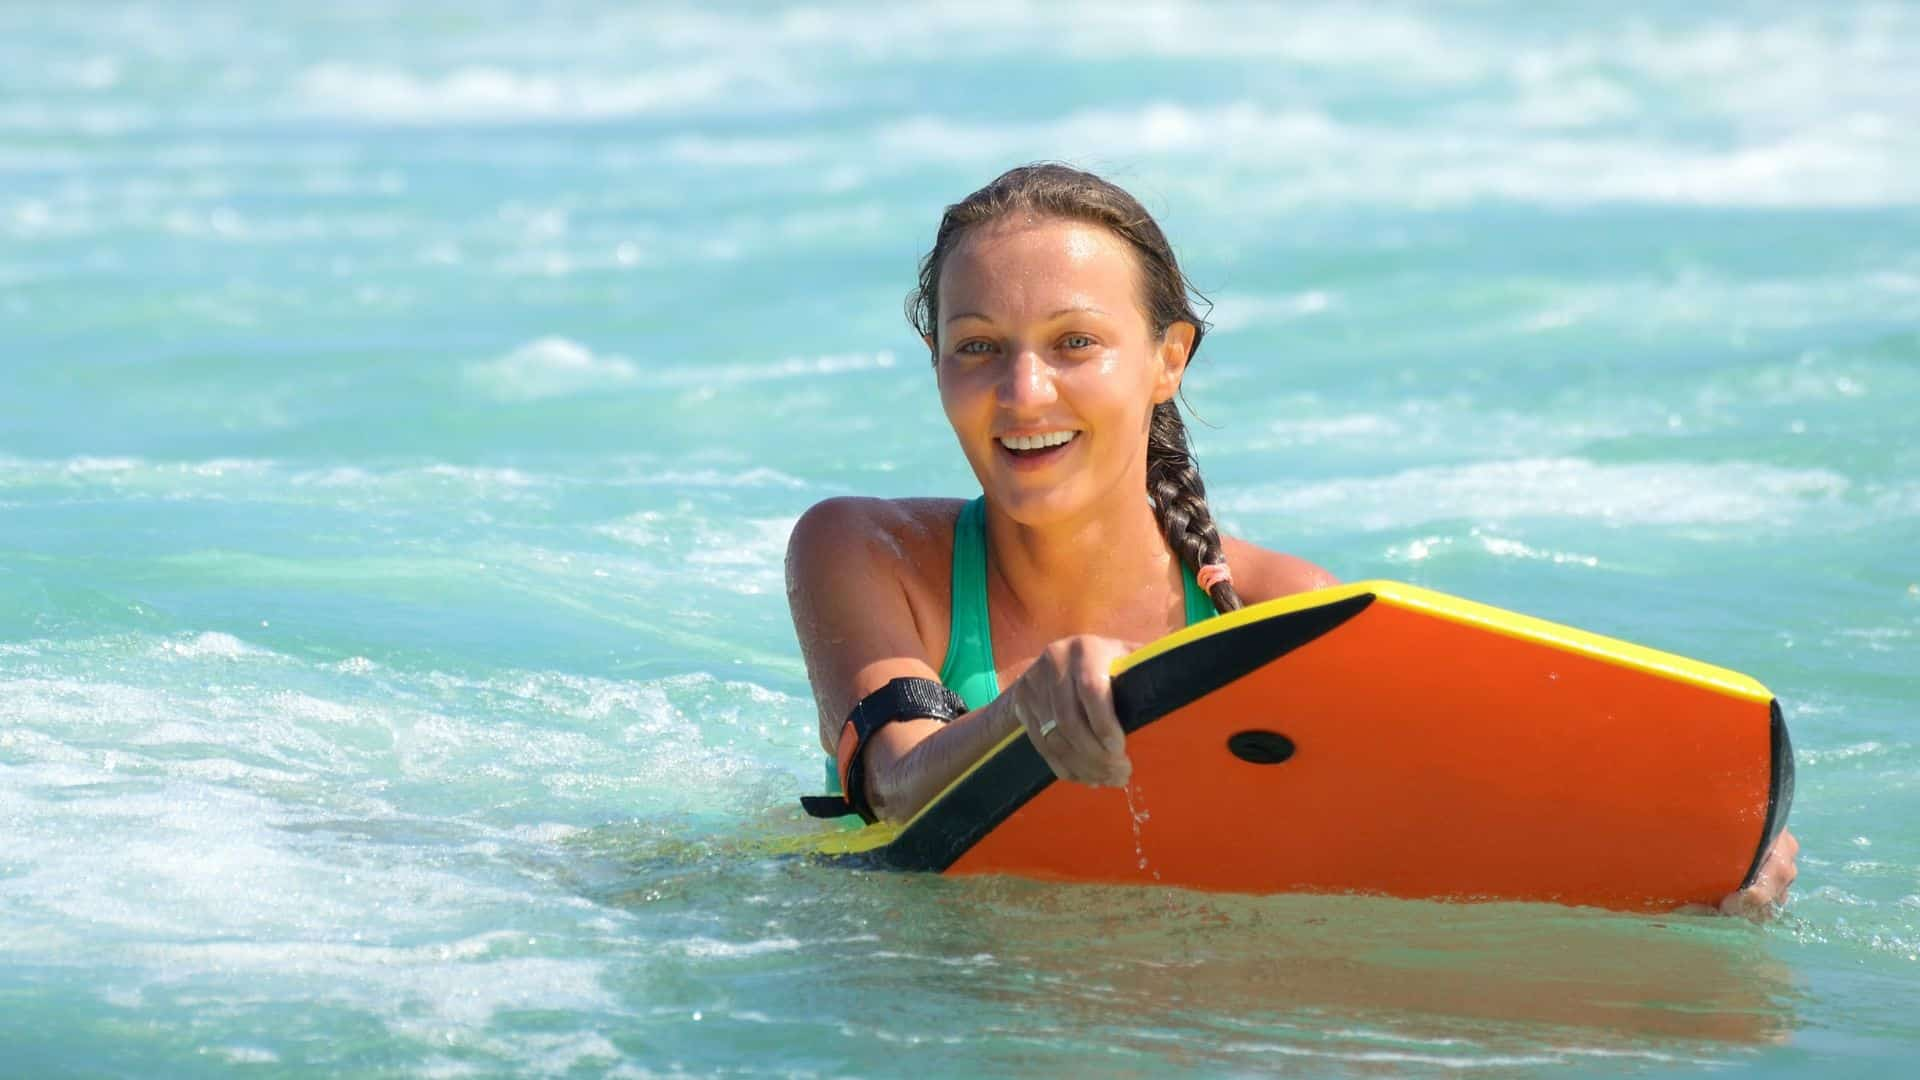 how to practice bodyboarding at home